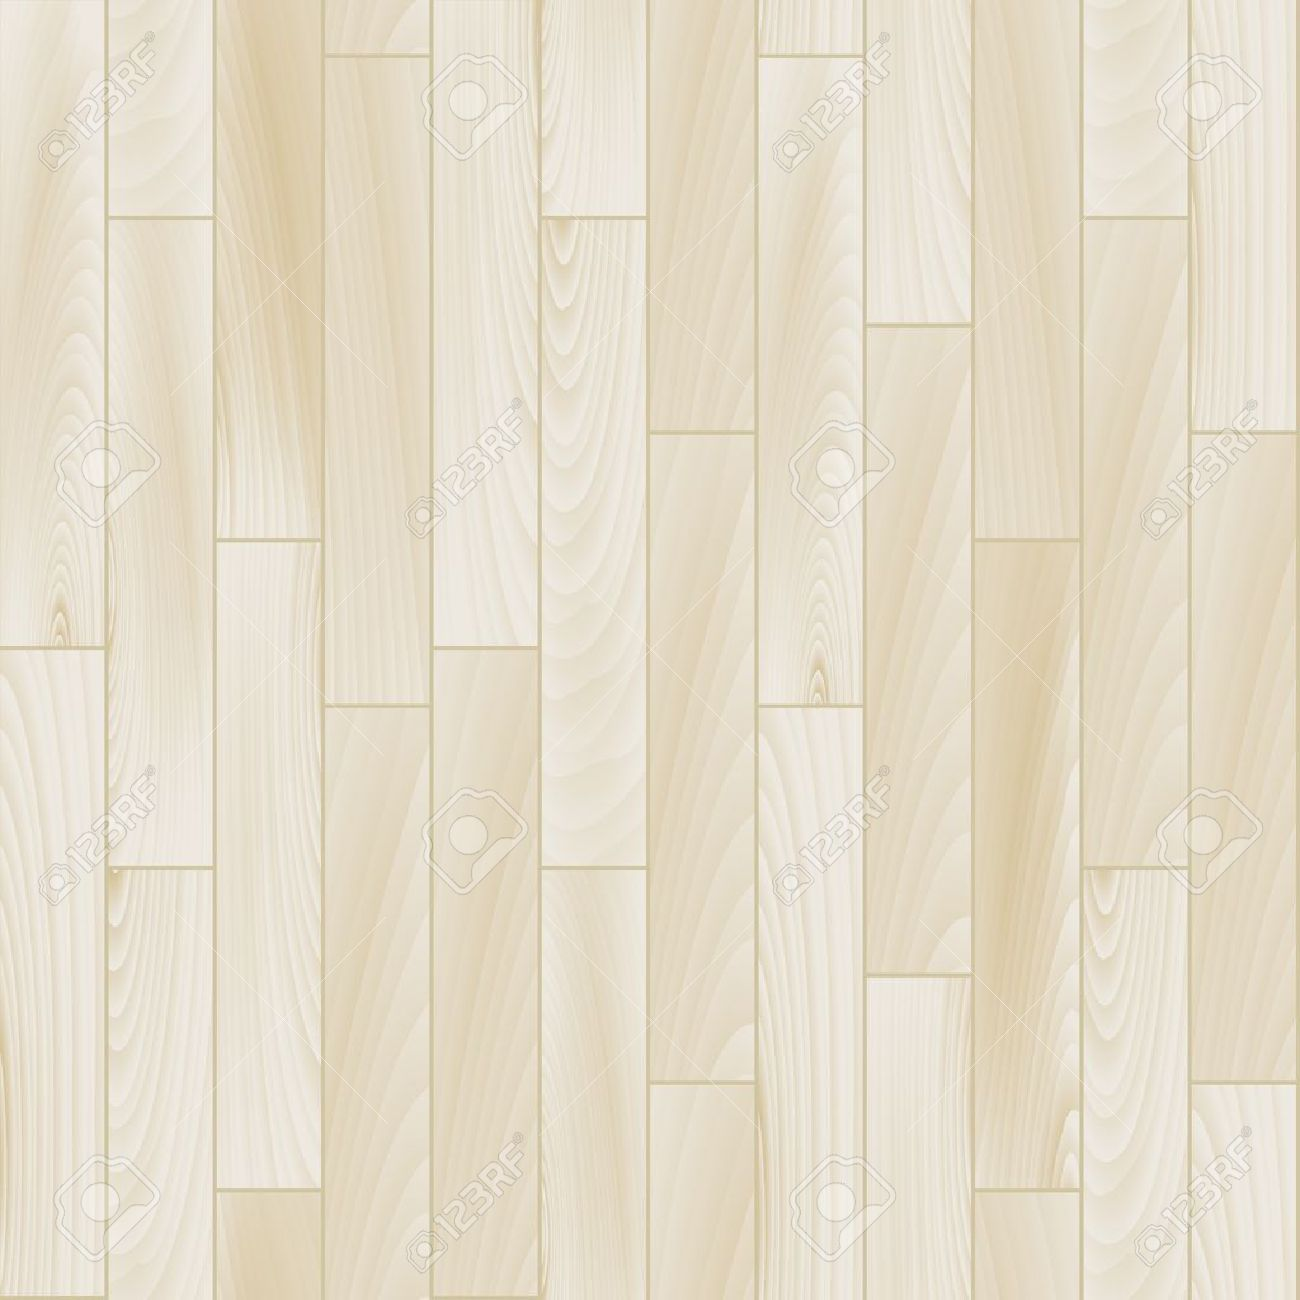 Wood Floor Texture Seamless Pattern